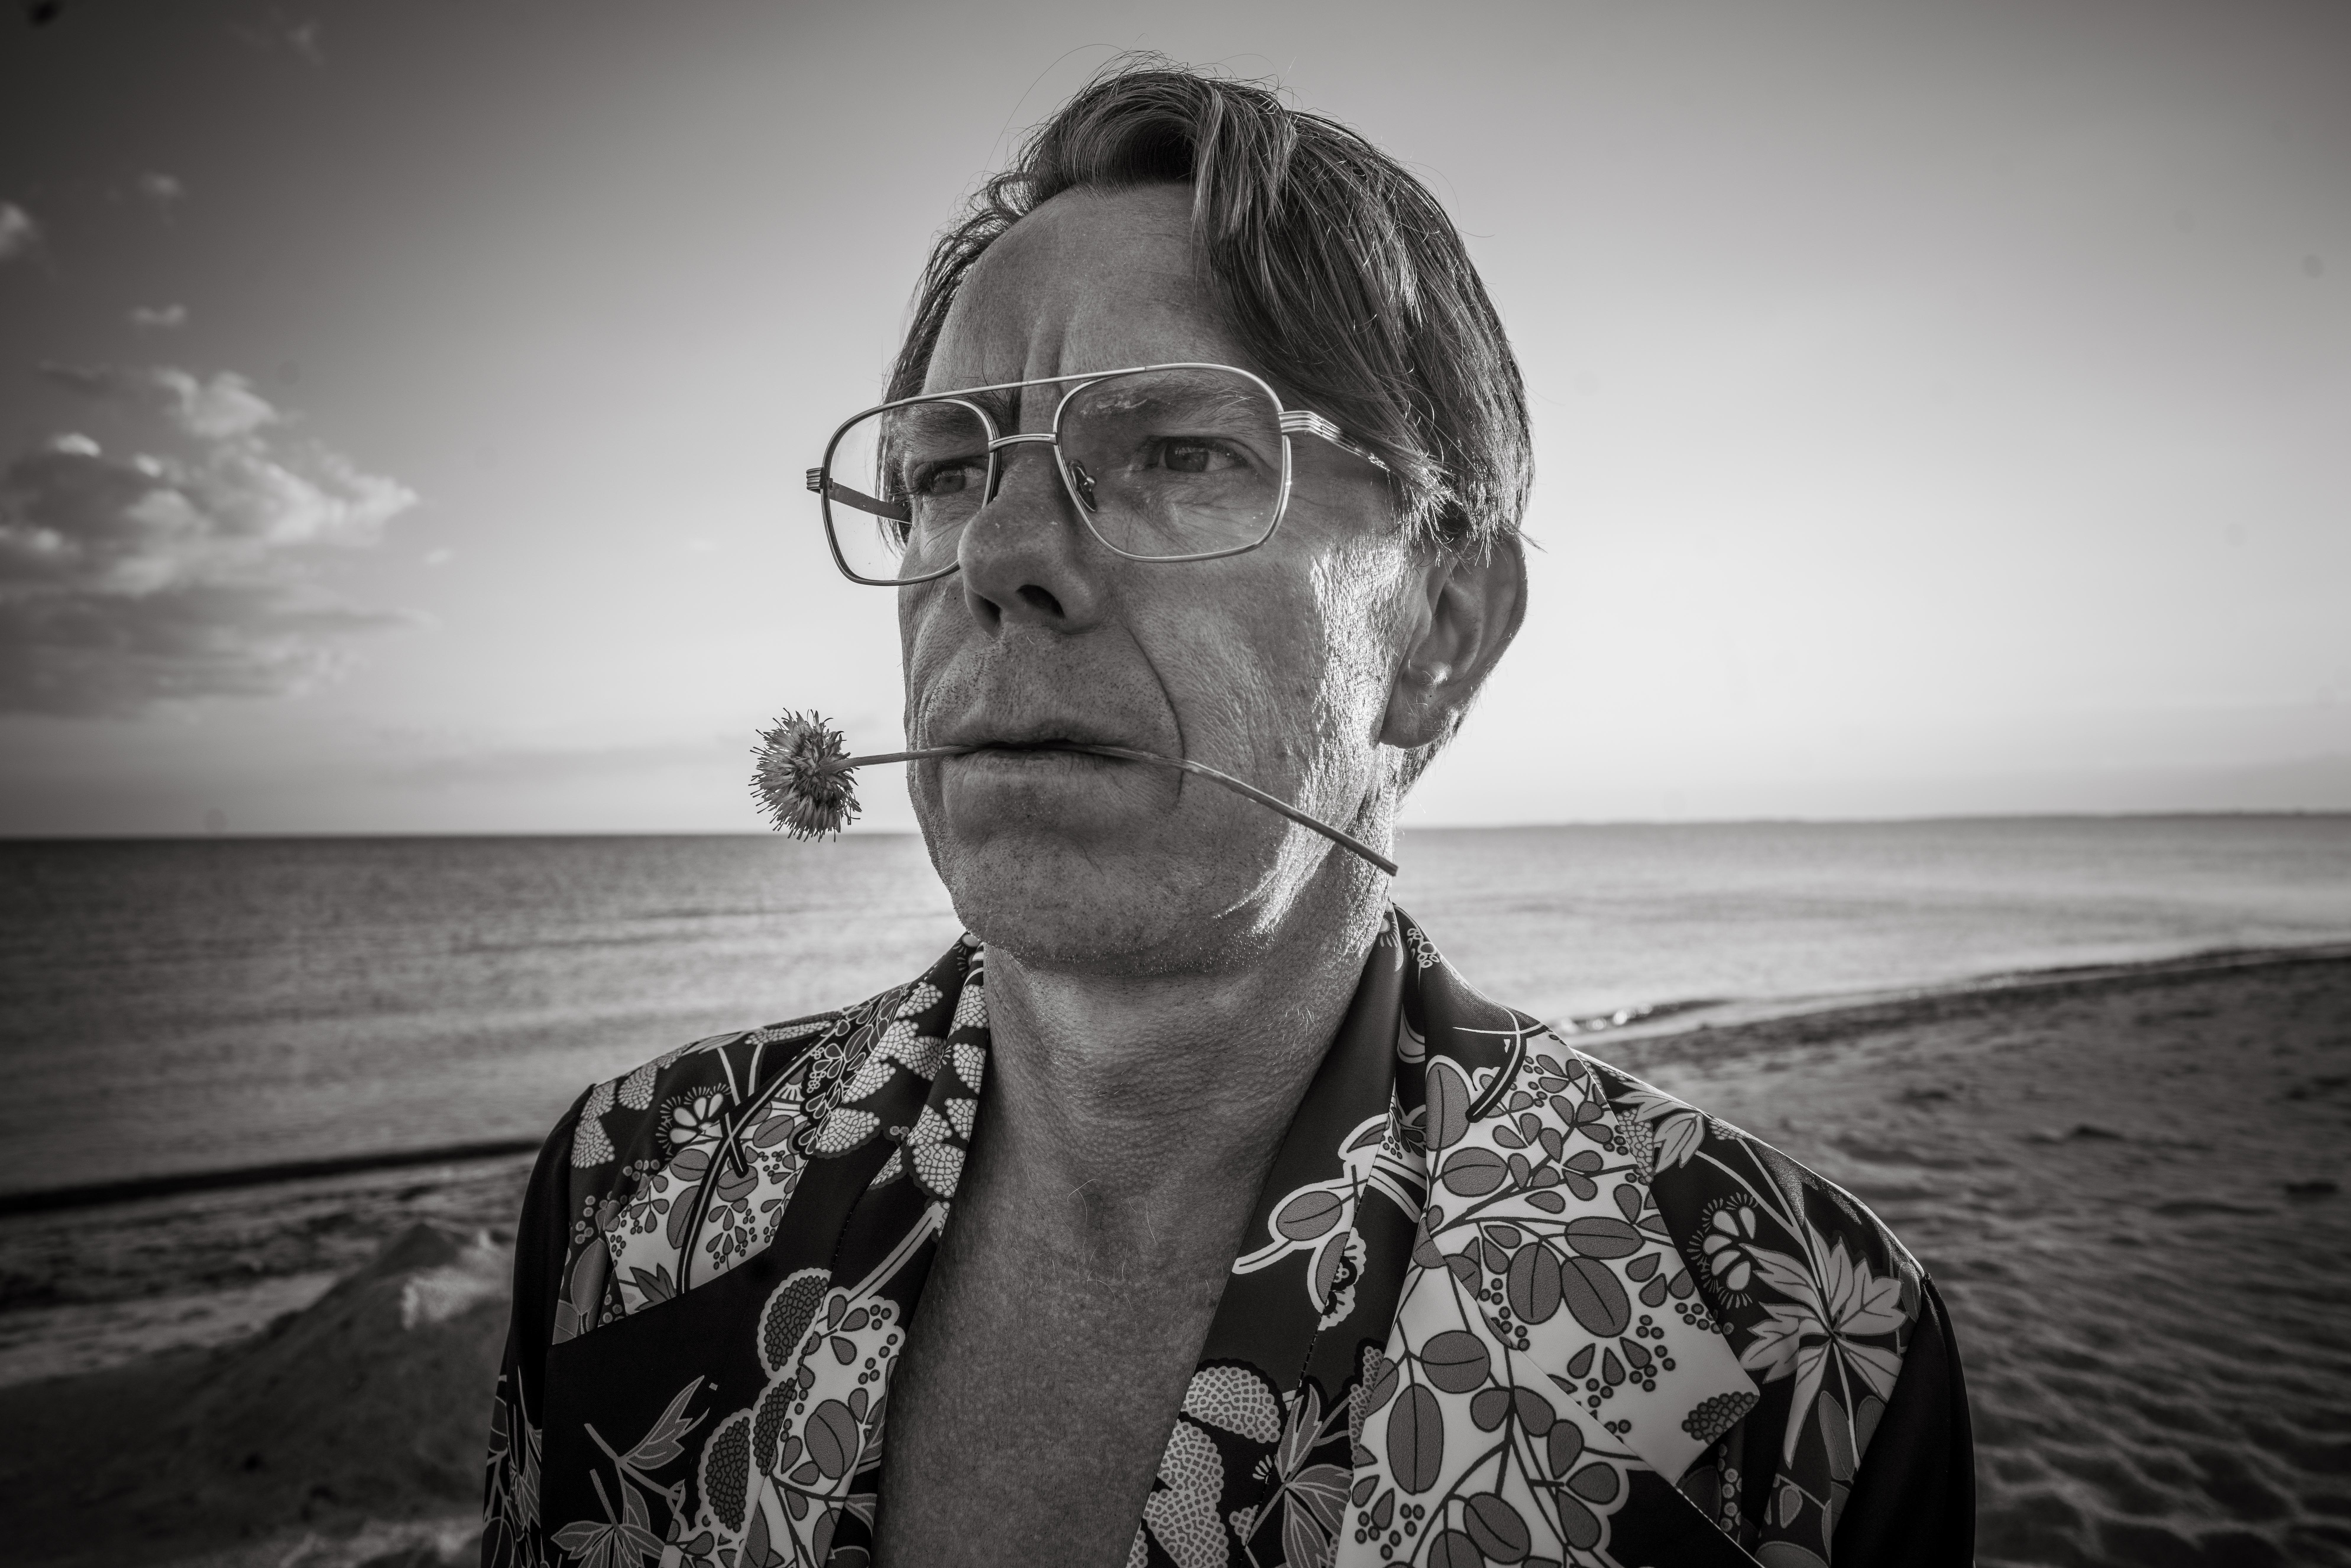 man in kimono on a beach with flower between lips